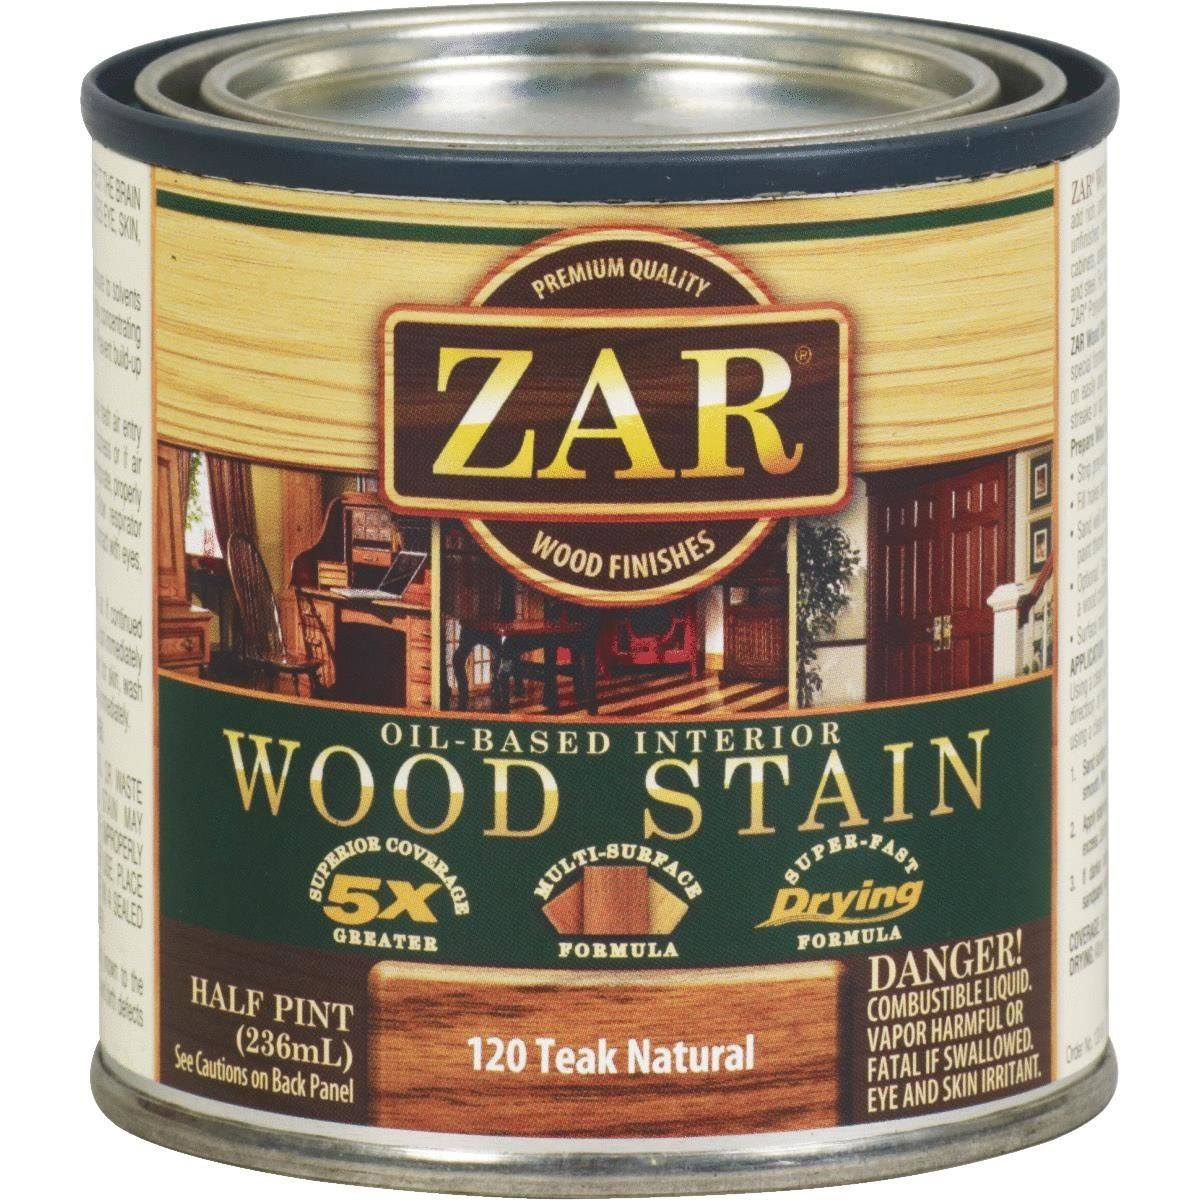 ZAR Wood Stain - Teak Natural, 236ml